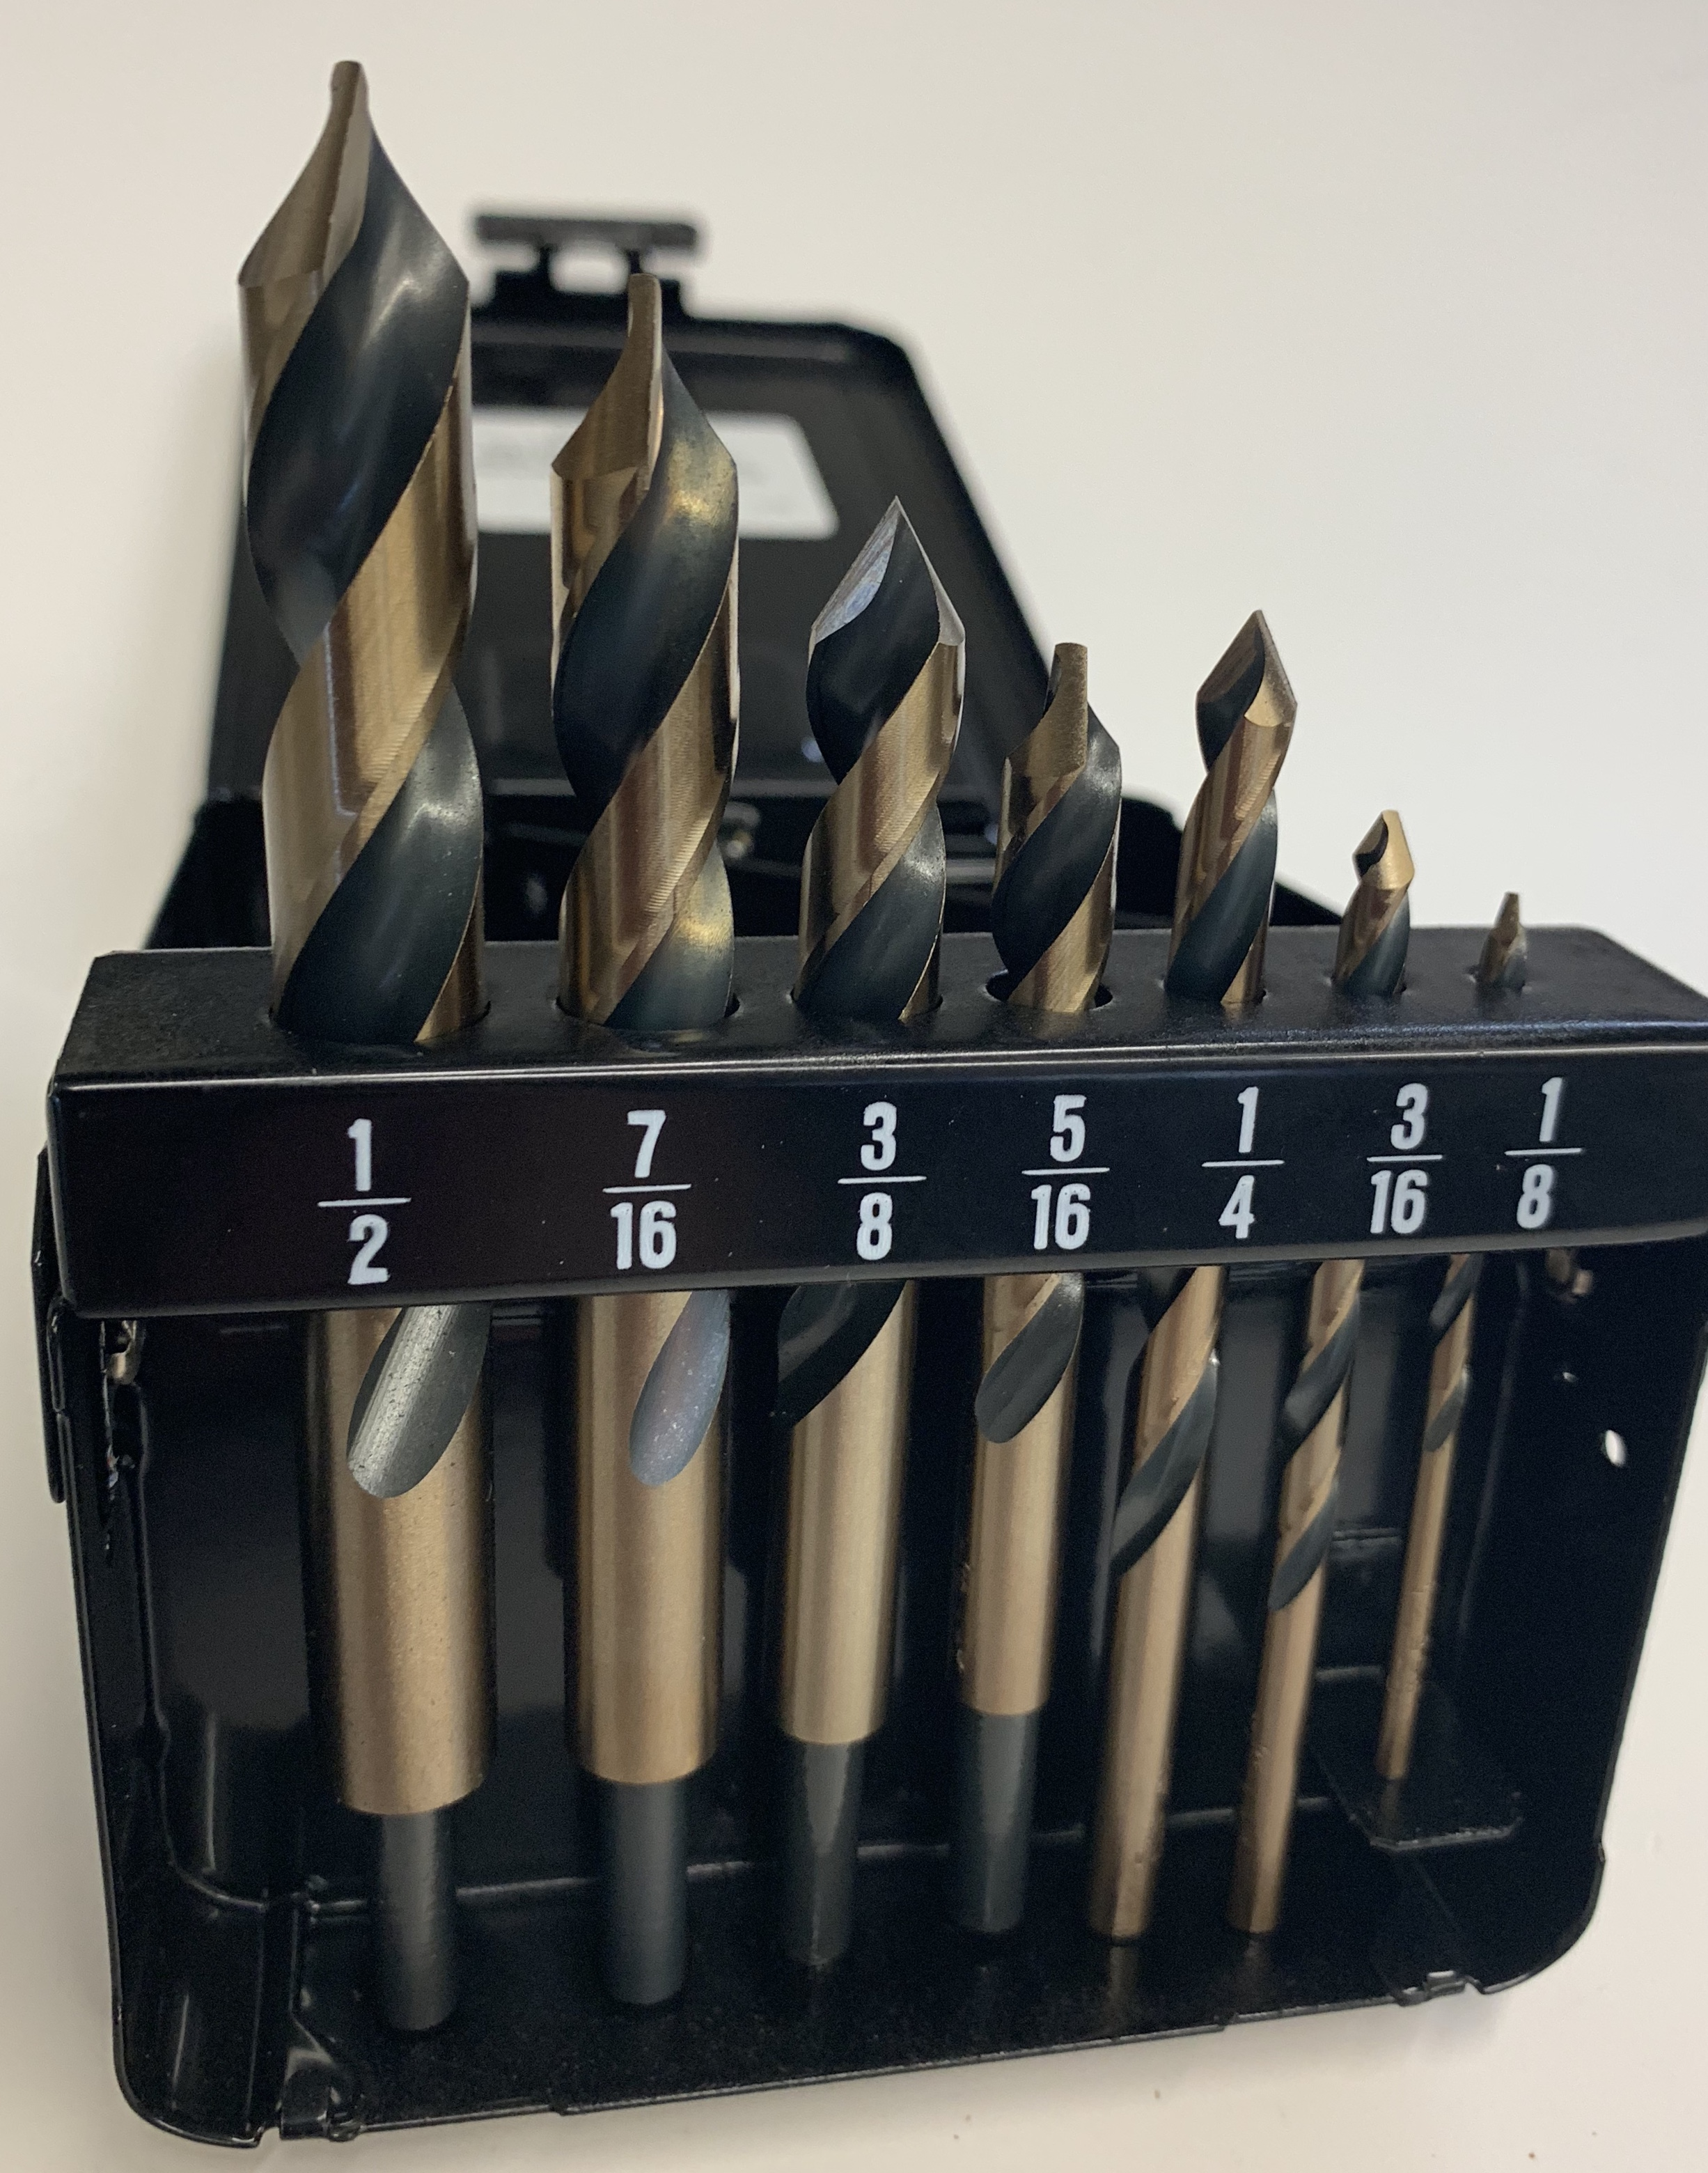 8pc ACRYLI-DRILL Set For Plastics, Acrylics & Rubber